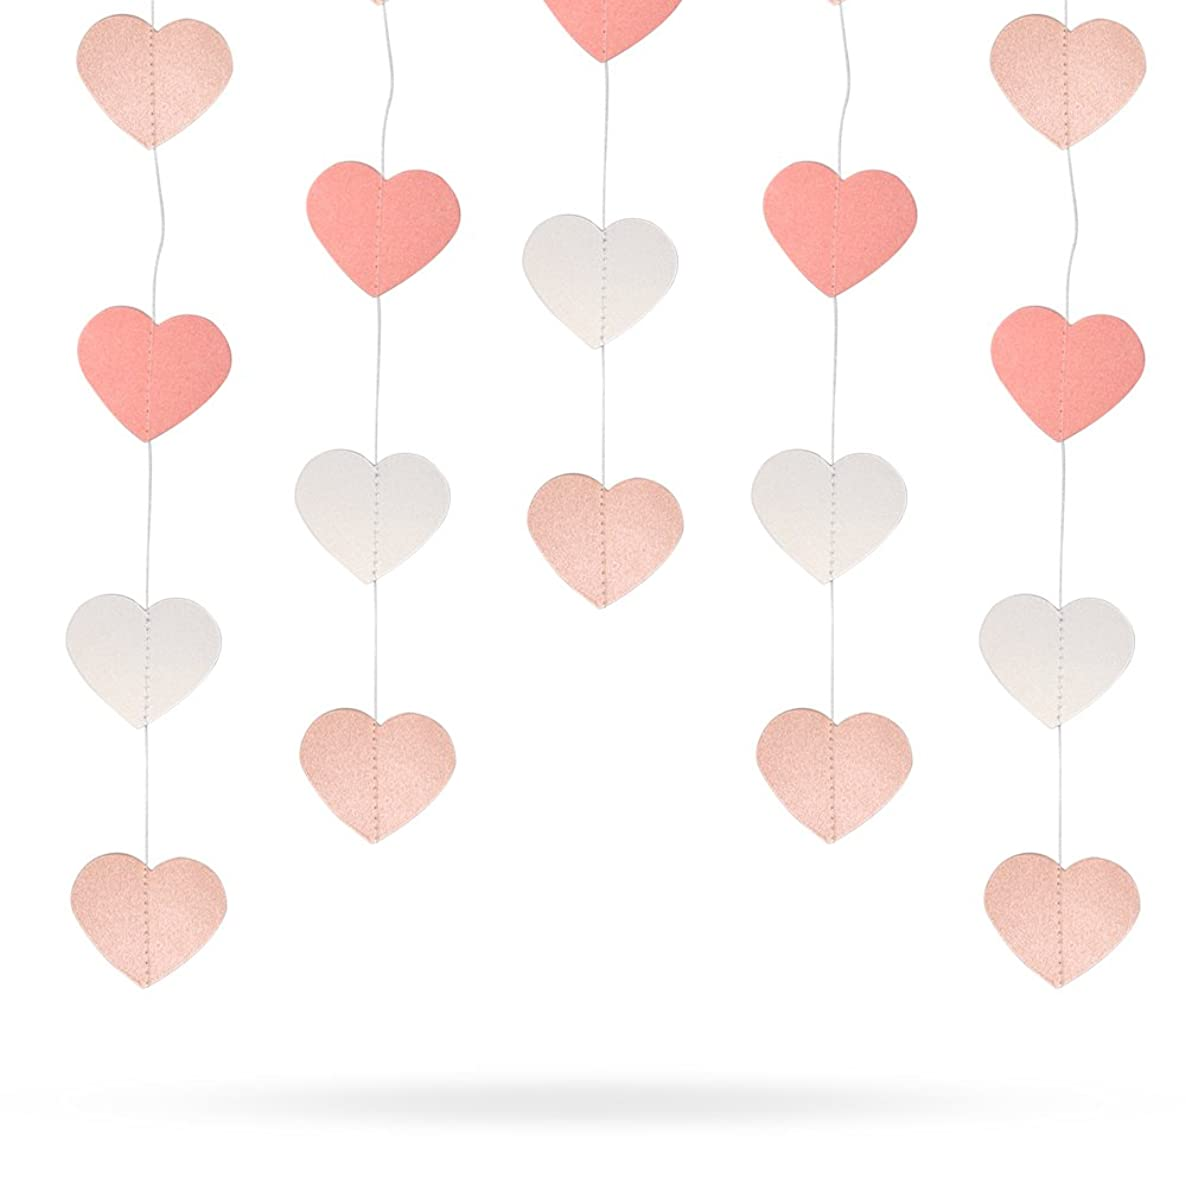 4 Pack 52.4 Feet Heart-shaped Rainbow Paper Garland Hanging Decorations (Pink and White Gradient )for Wedding Party Birthday Decorations by Erlvery DaMain